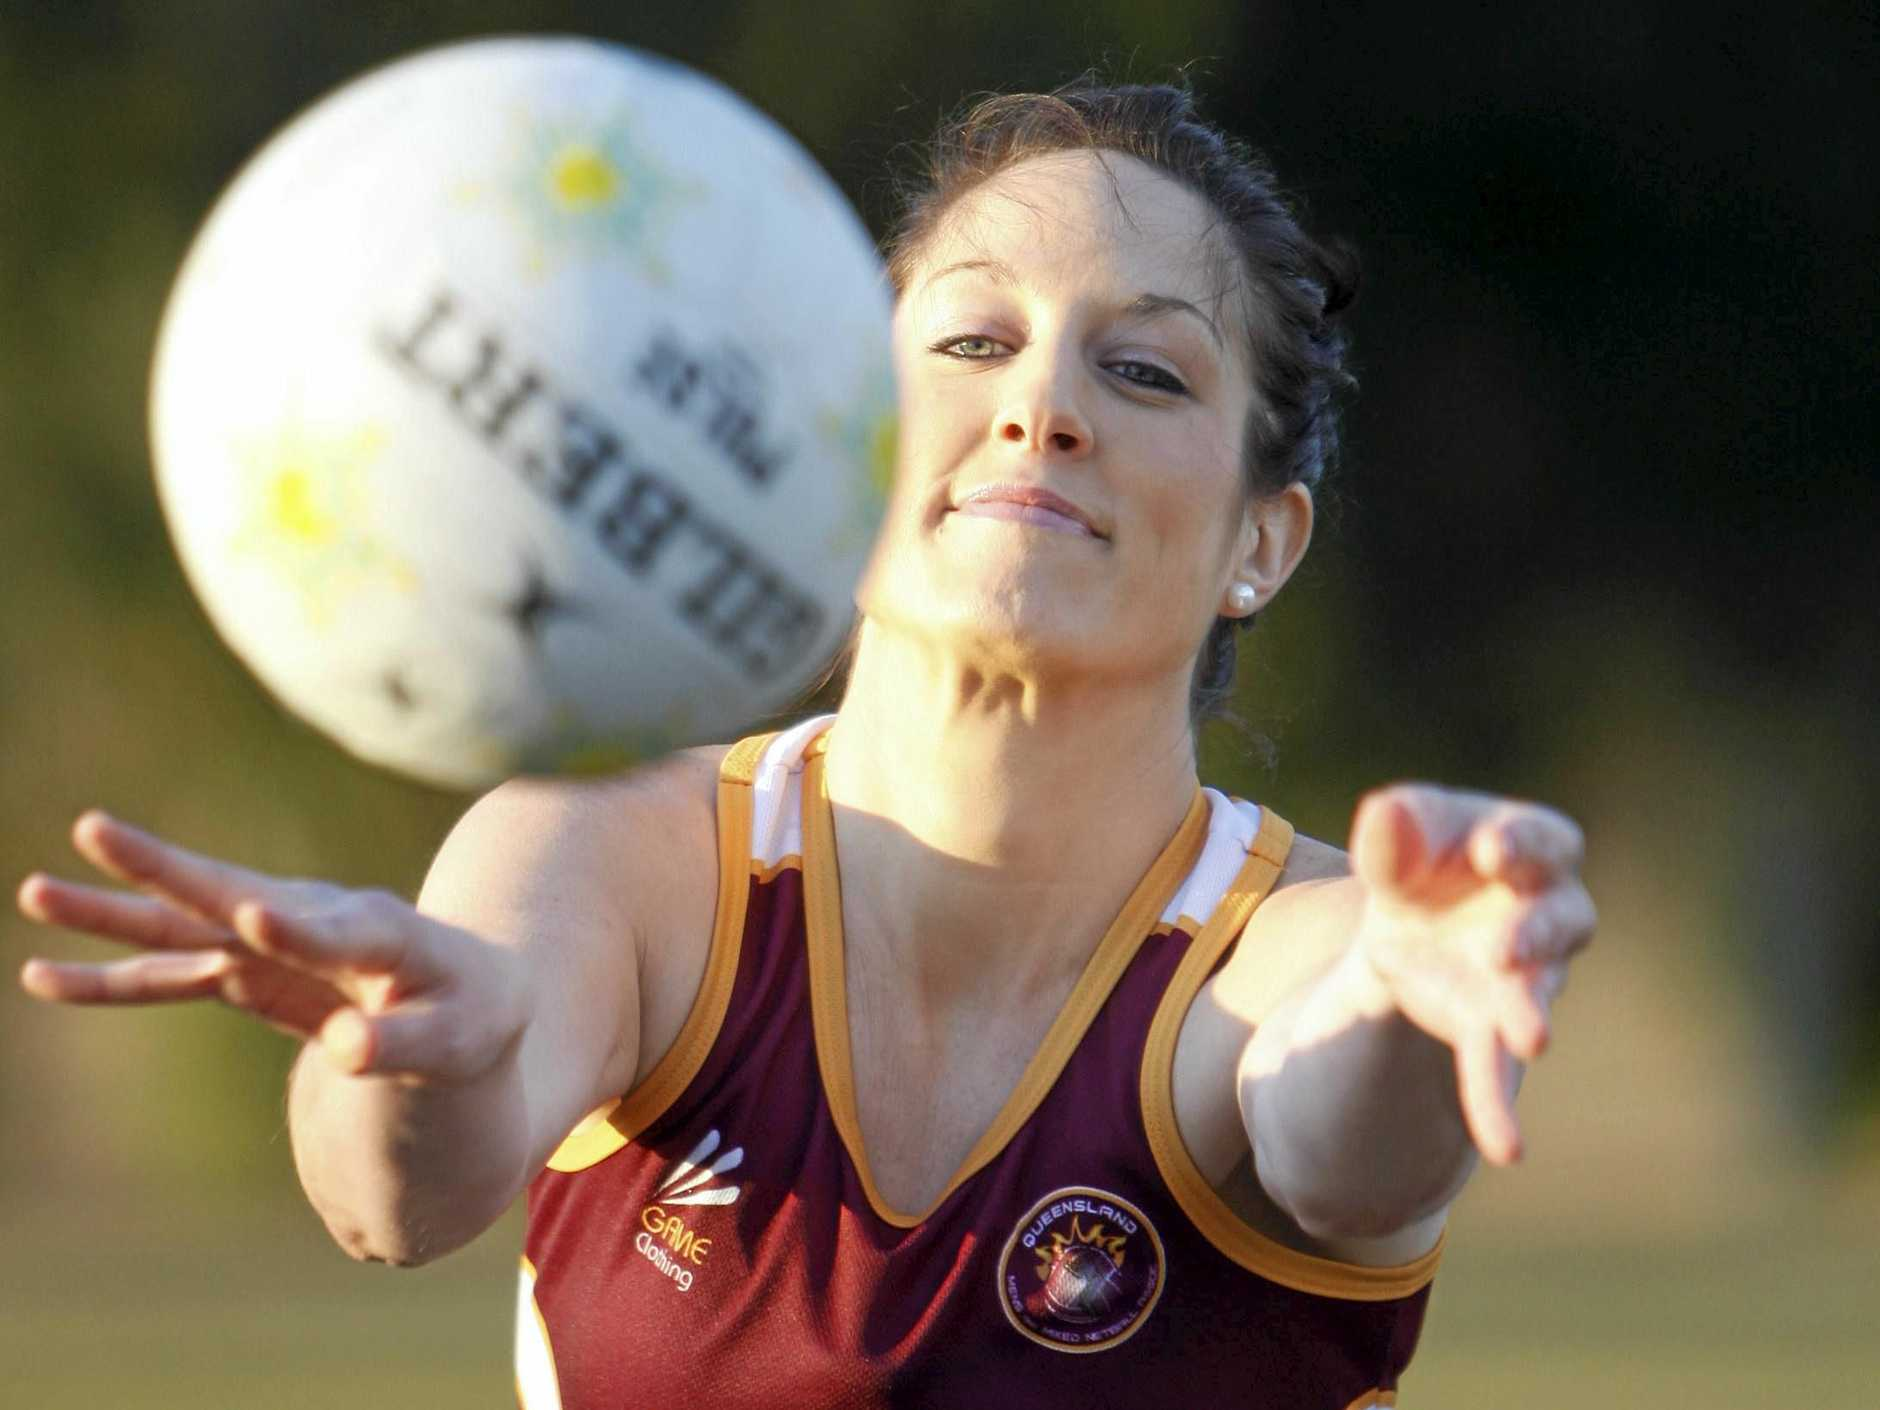 PLAYER FLASHBACK: Ipswich Flyers' new coach Nicole Grant (nee Cude) when she was selected in the Australian mixed netball team.